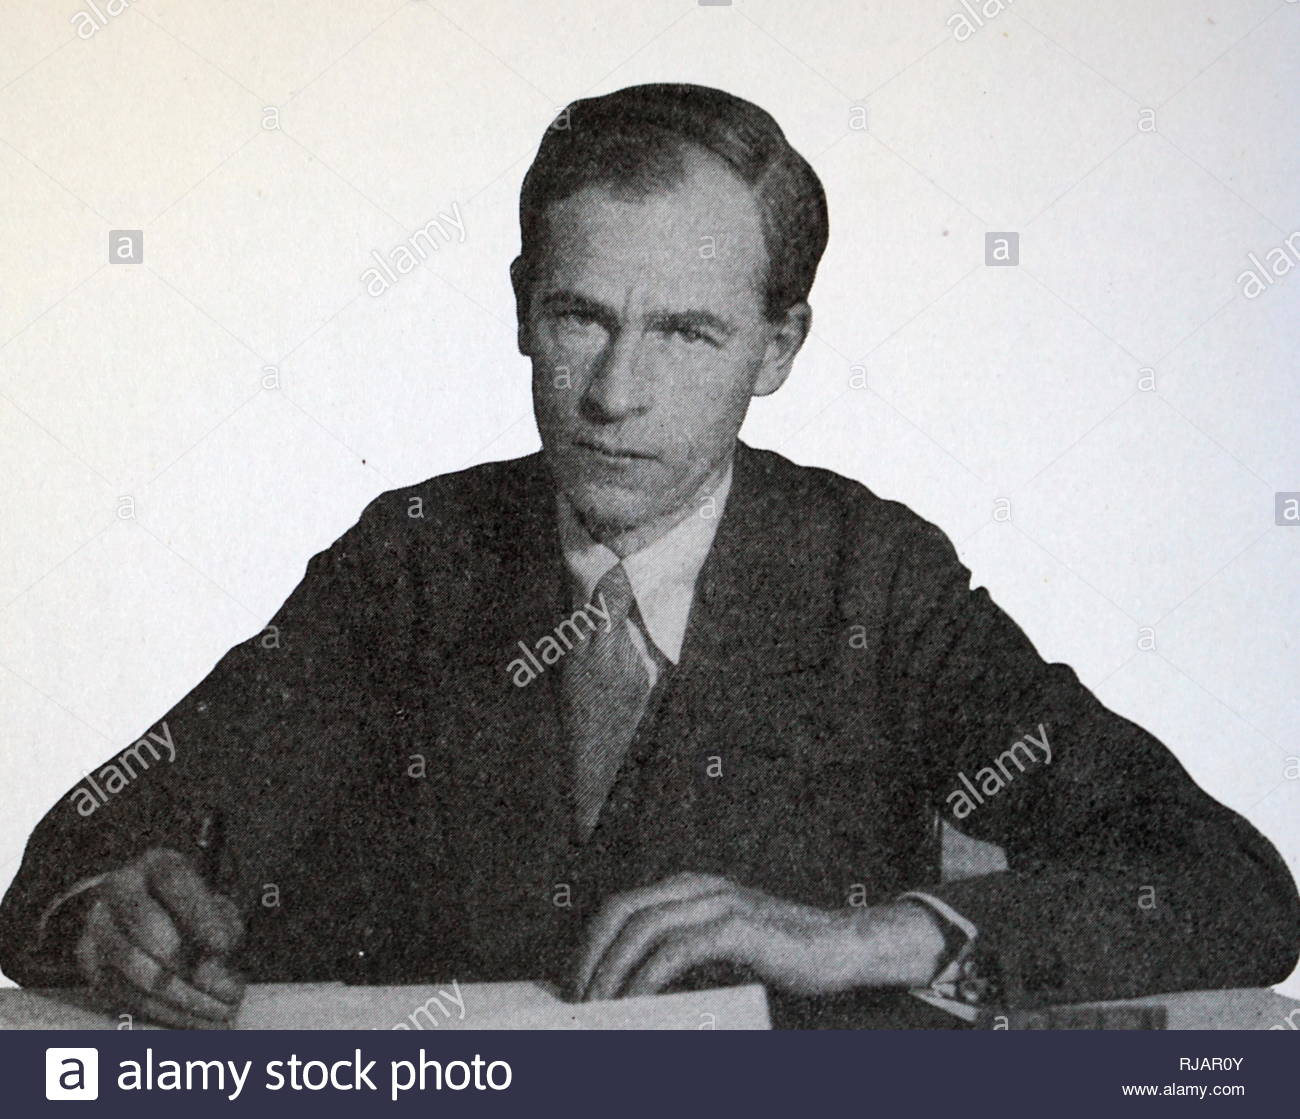 George Douglas Howard Cole (25 September 1889 - 14 January 1959) was an English political theorist, economist, writer and historian. As a libertarian socialist he was a long-time member of the Fabian Society and an advocate for the co-operative movement. - Stock Image